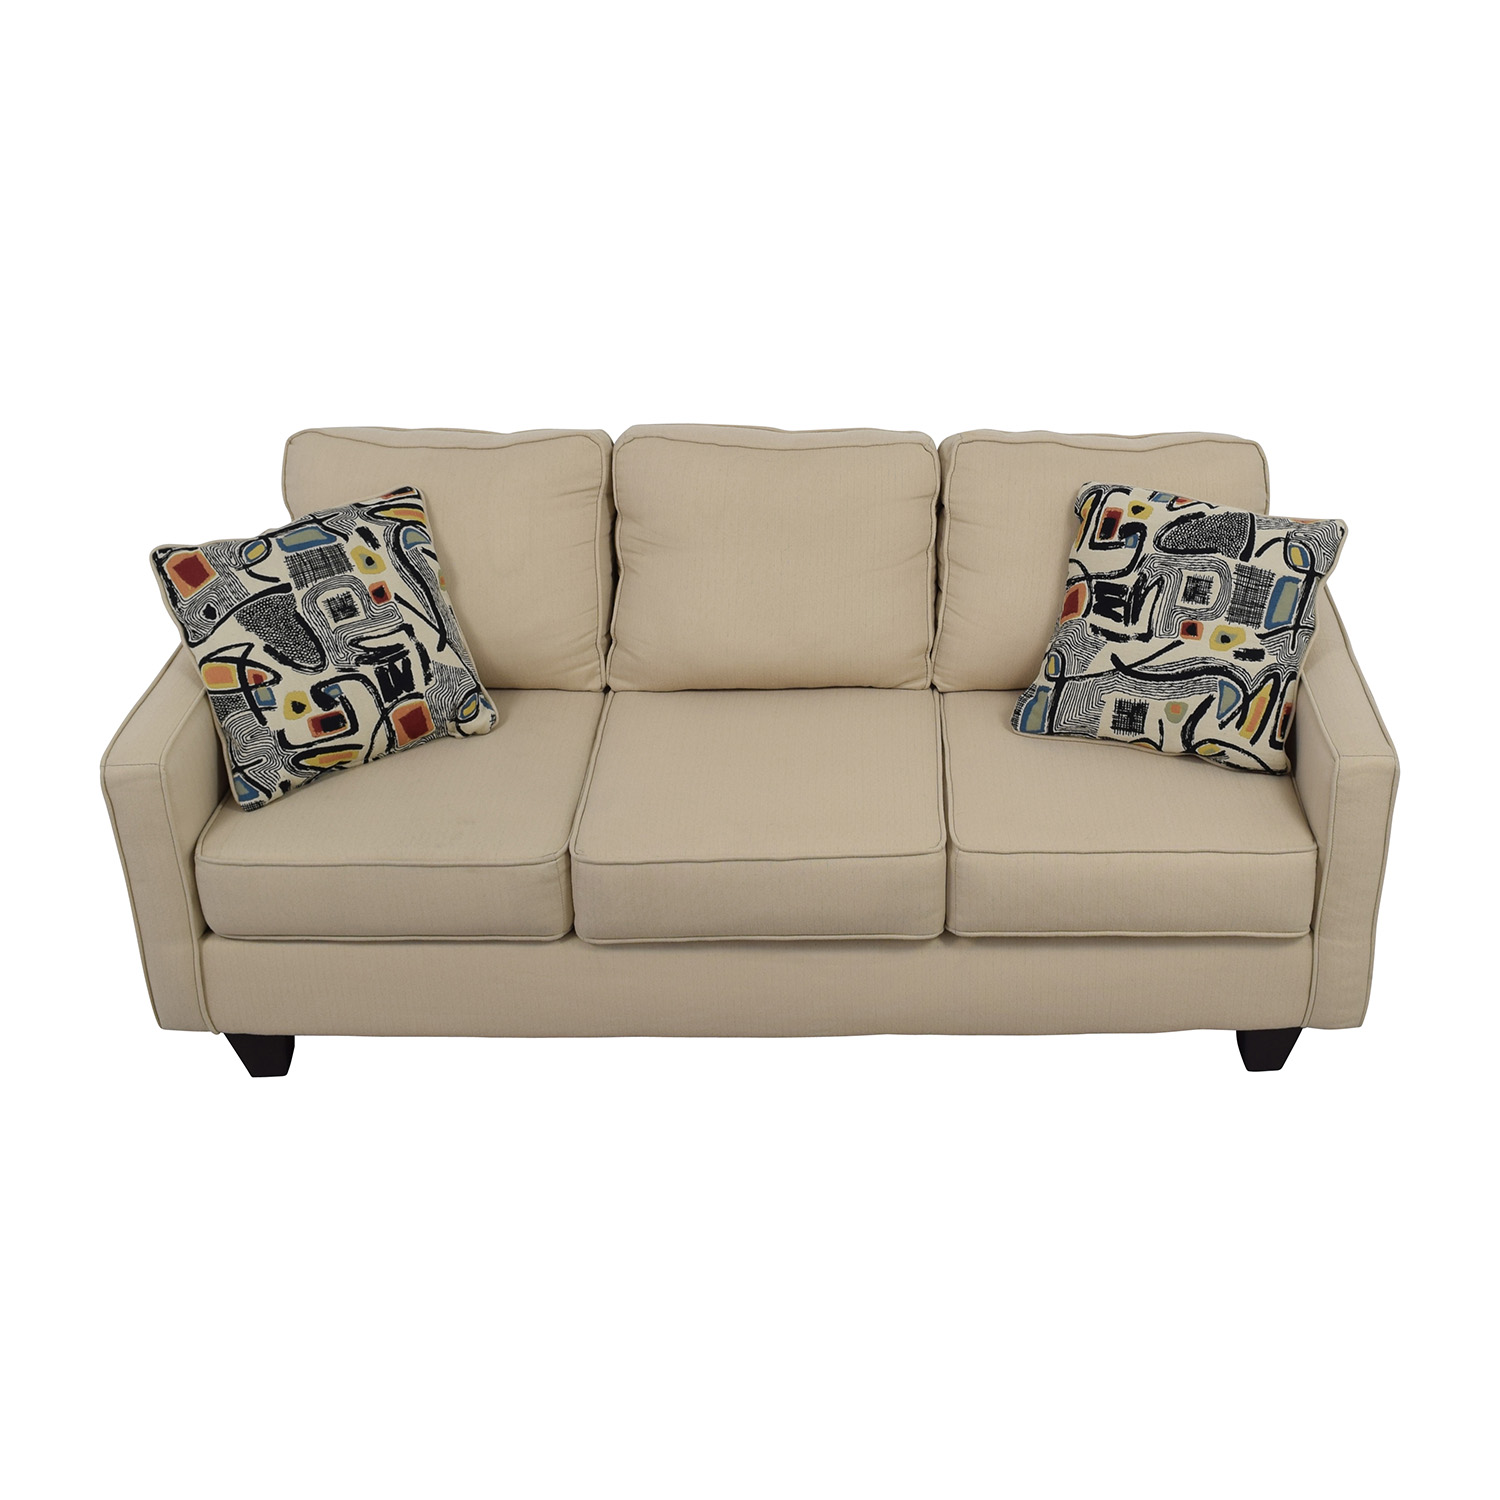 Warefair Com: Wayfair Wayfair AllModern Three Cushion Beige